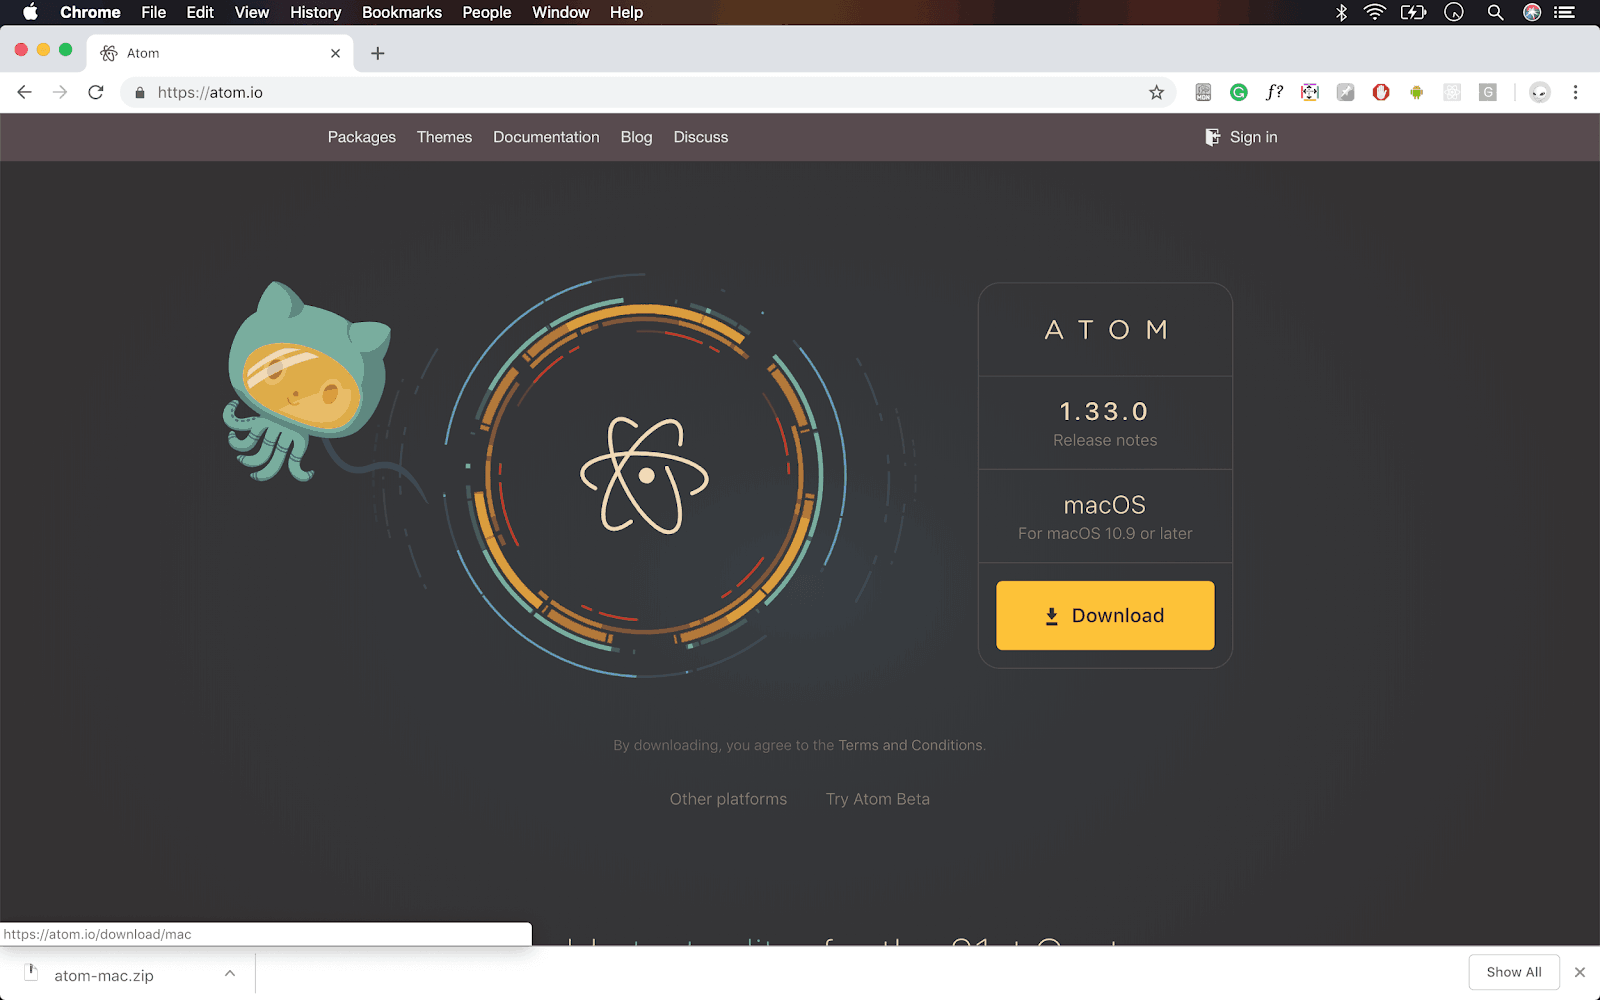 screenshot of atom.io homepage on Mac OS